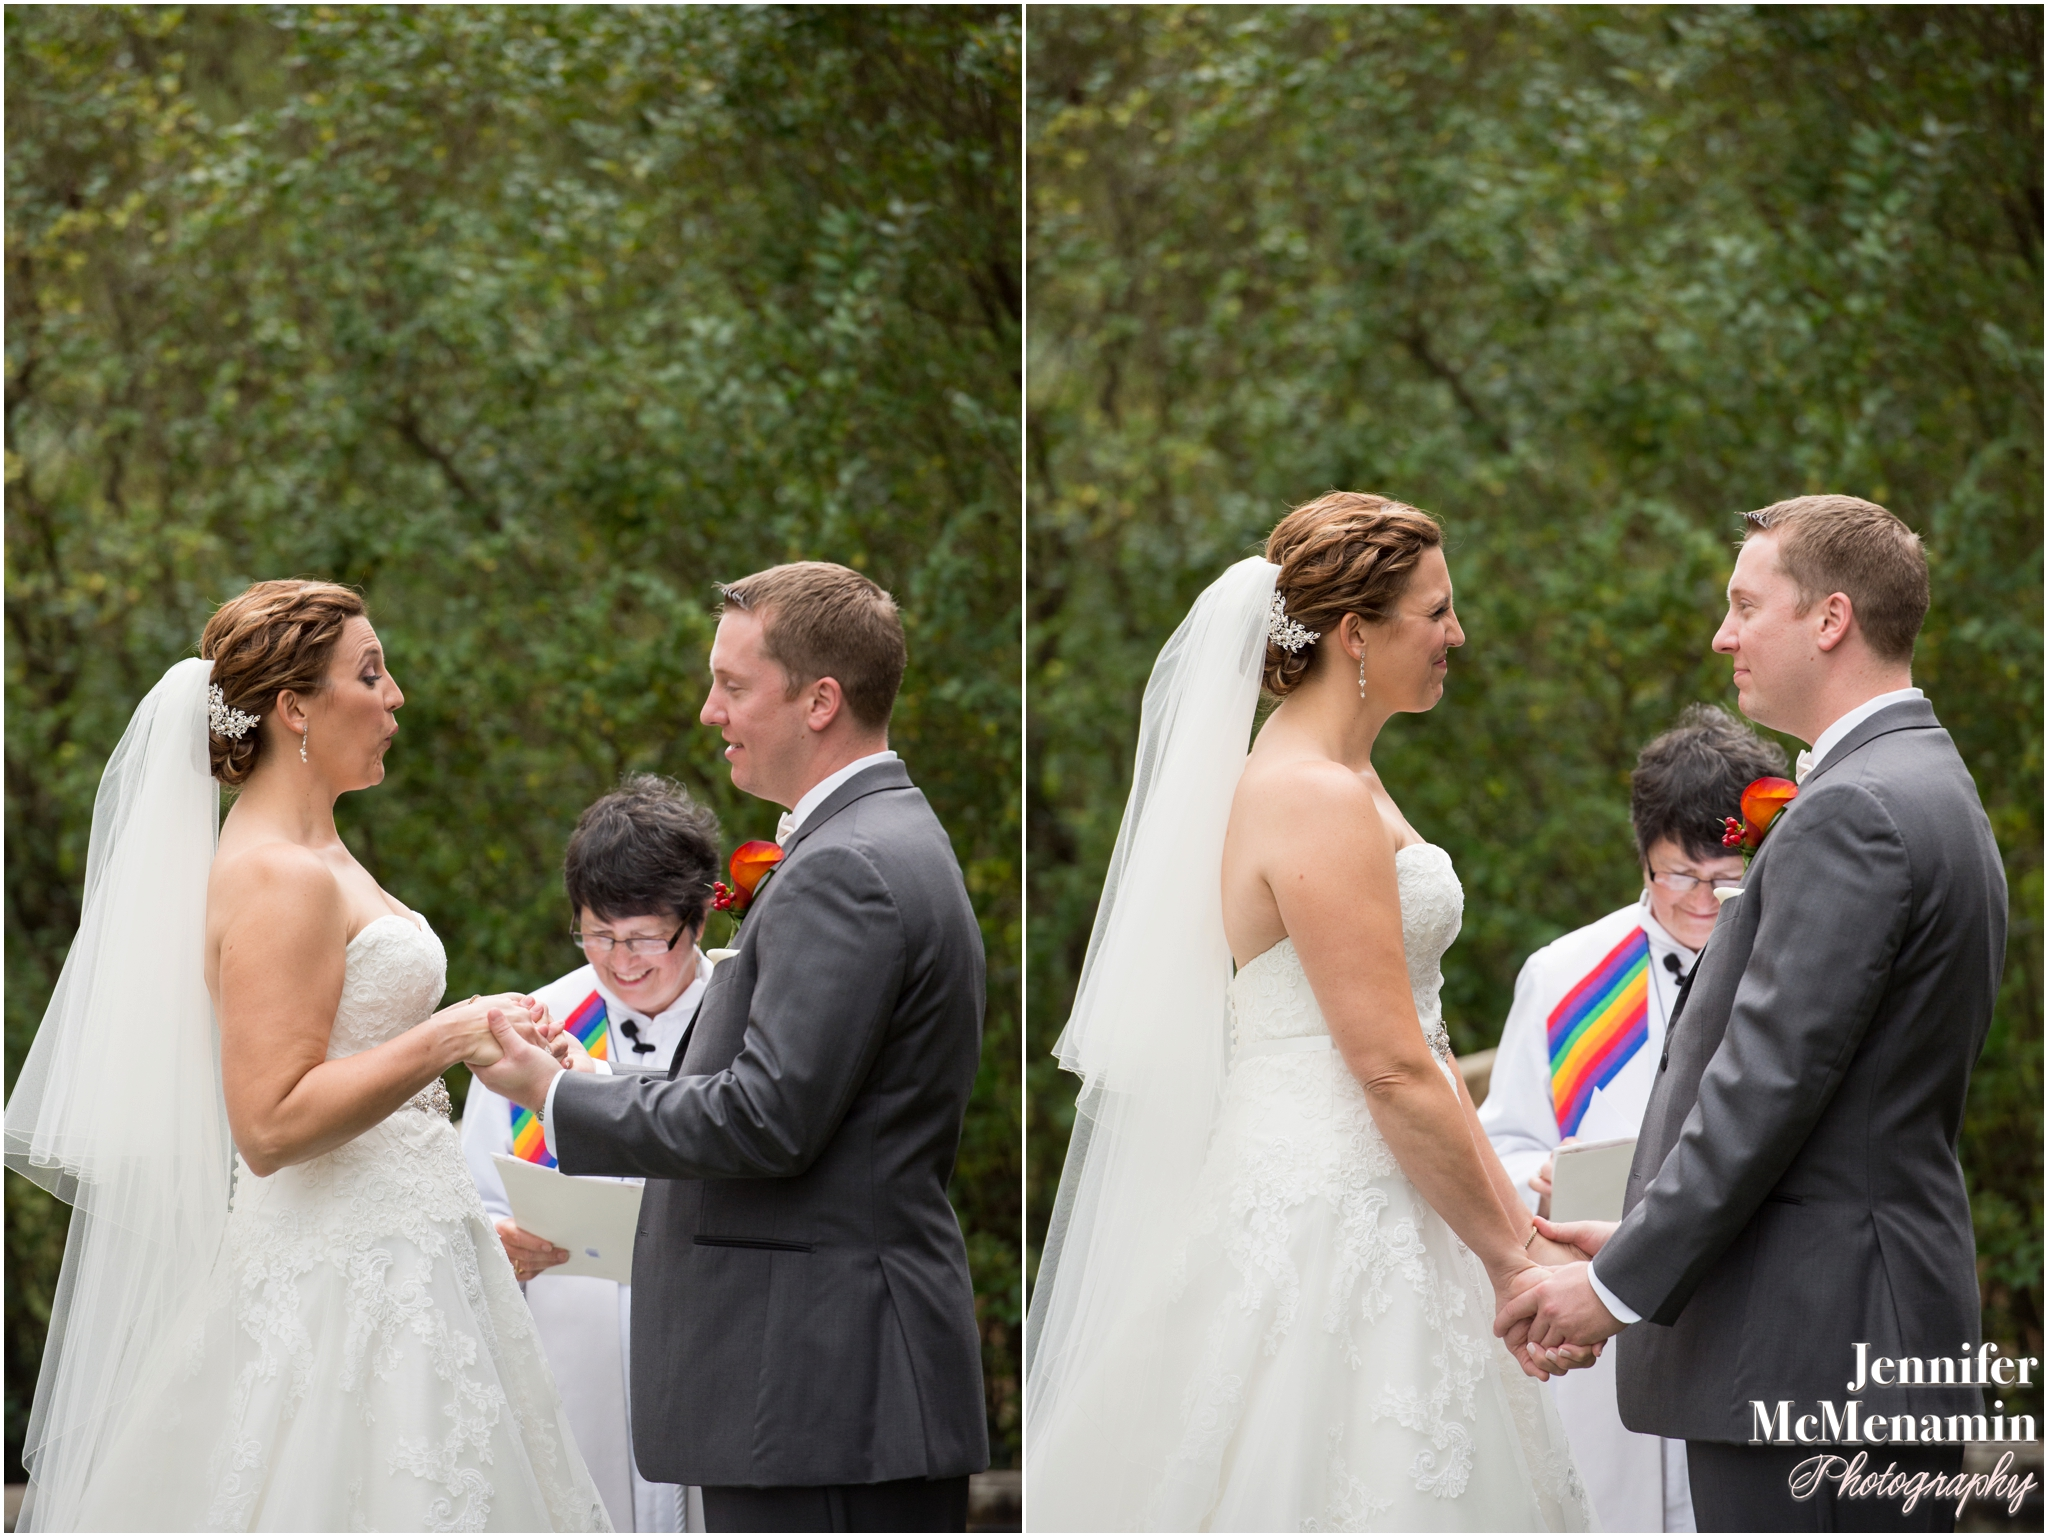 055-HenningMiller_01938-0397_JenniferMcMenaminPhotography_Evergreen-Museum-And-Carriage-House_Evergreen-wedding_Baltimore-wedding-photographer_Baltimore-wedding-photography